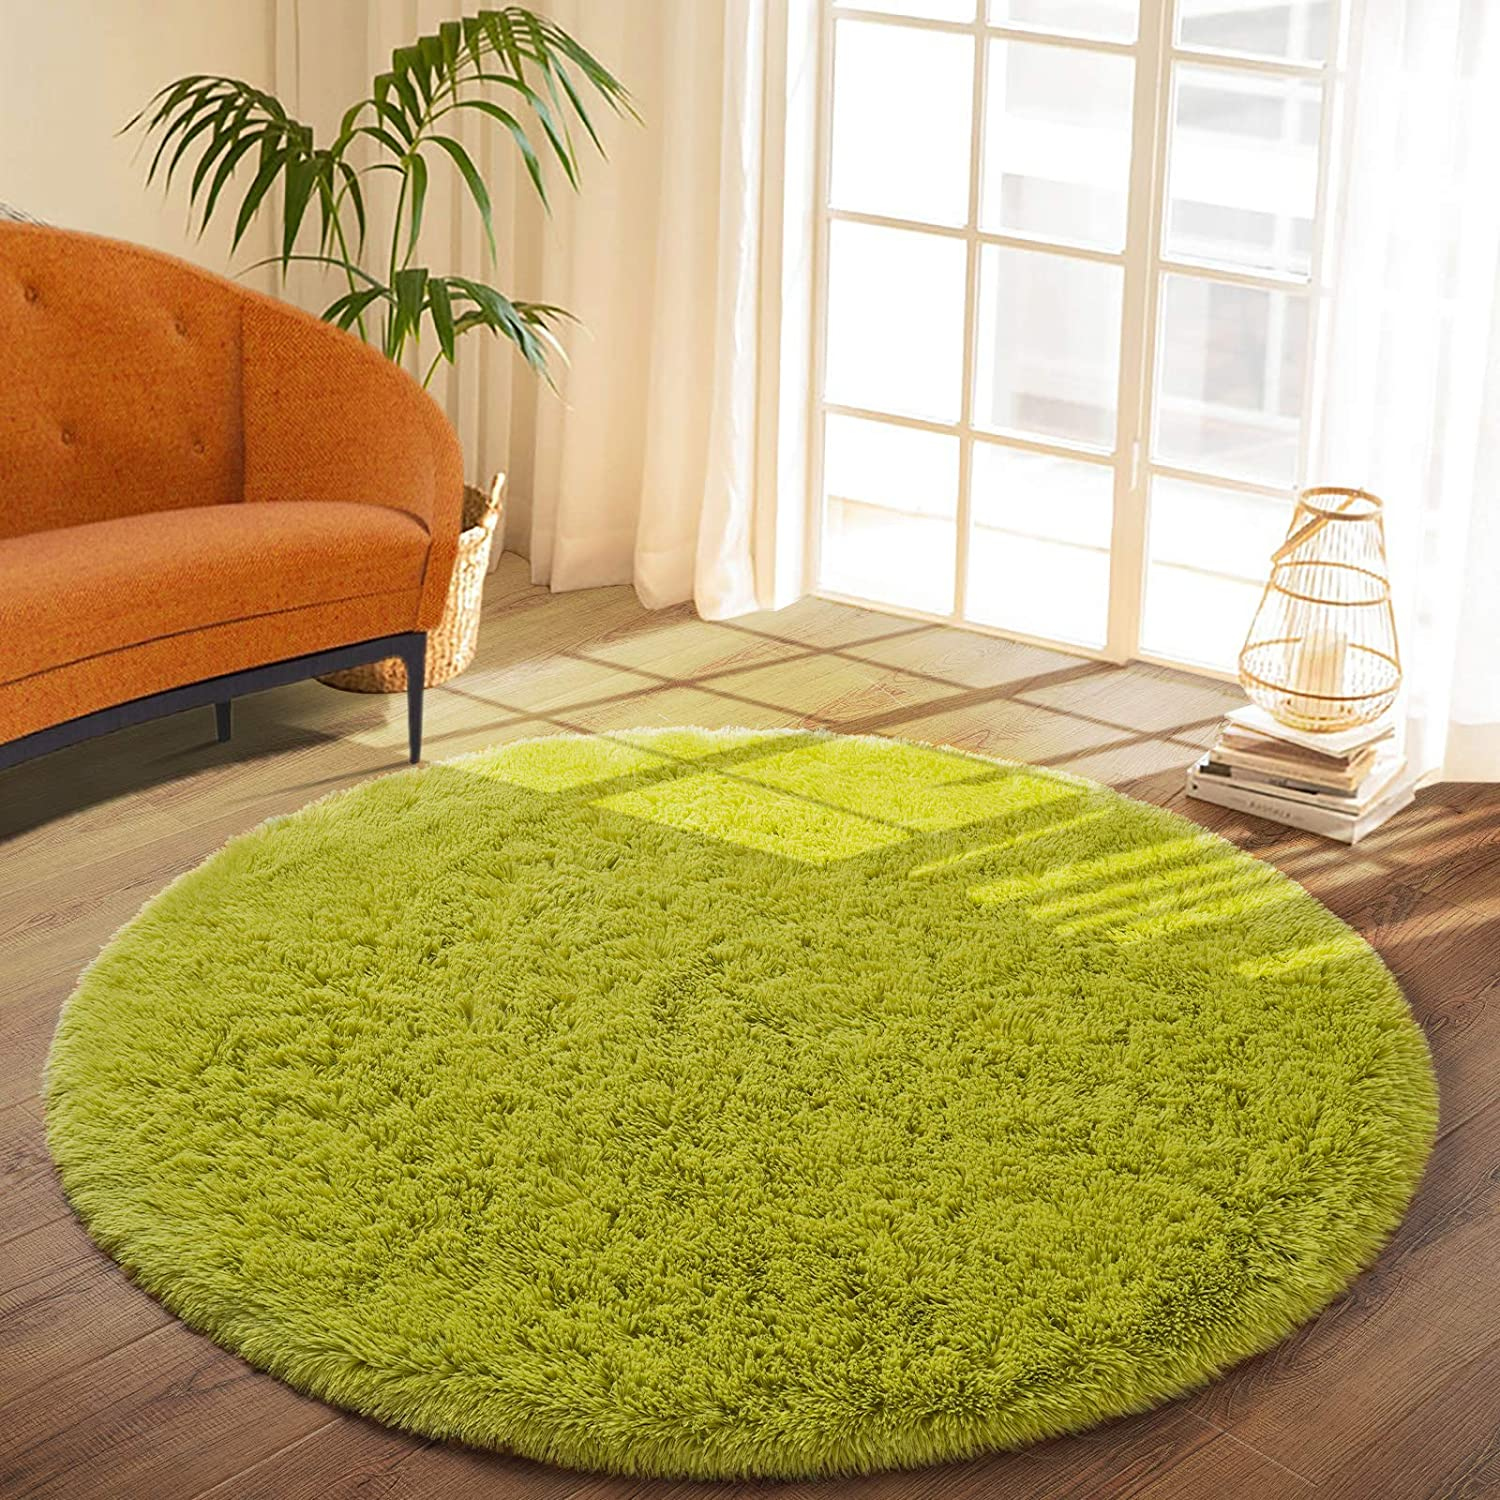 DETUM Soft Round Fluffy Bedroom Rugs for Girls Boys, Fuzzy Circle Area Rug for Nursery Playing Reading Room, Kids Room Carpets Shaggy Cute Rugs for Dorm Bedside Home Décor, 4 Feet, Green